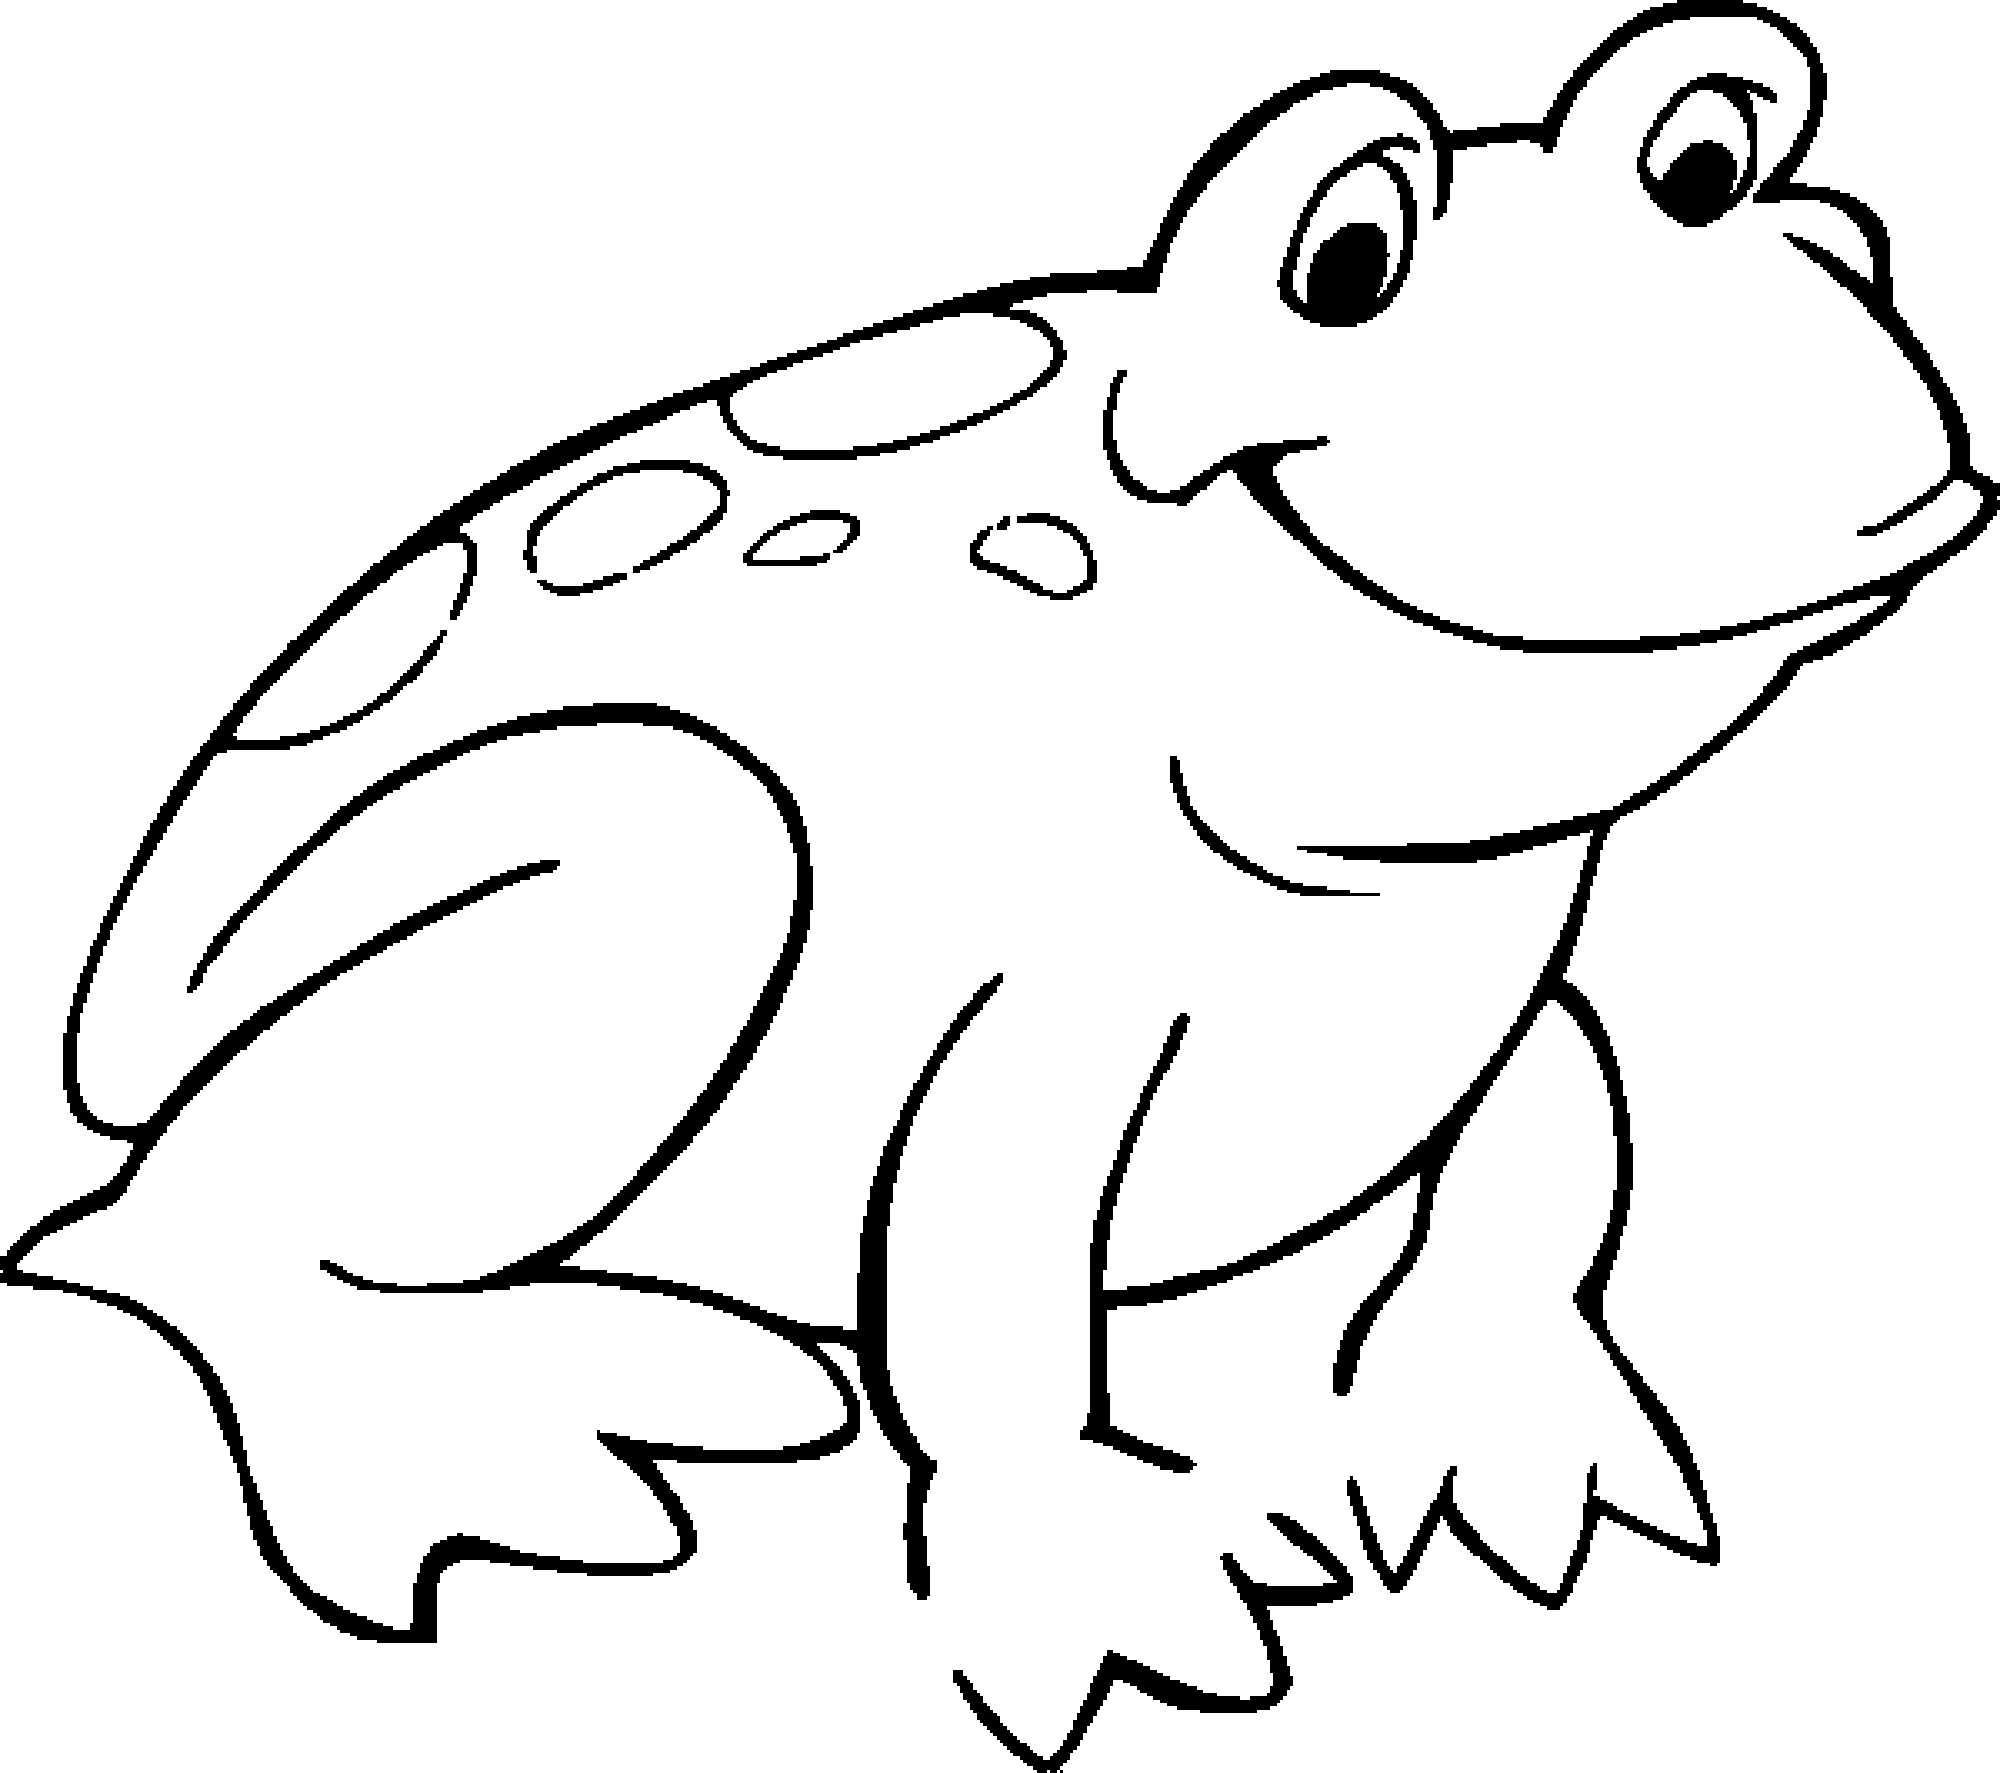 2000x1773 Unparalleled Frog Coloring Pages For Preschool